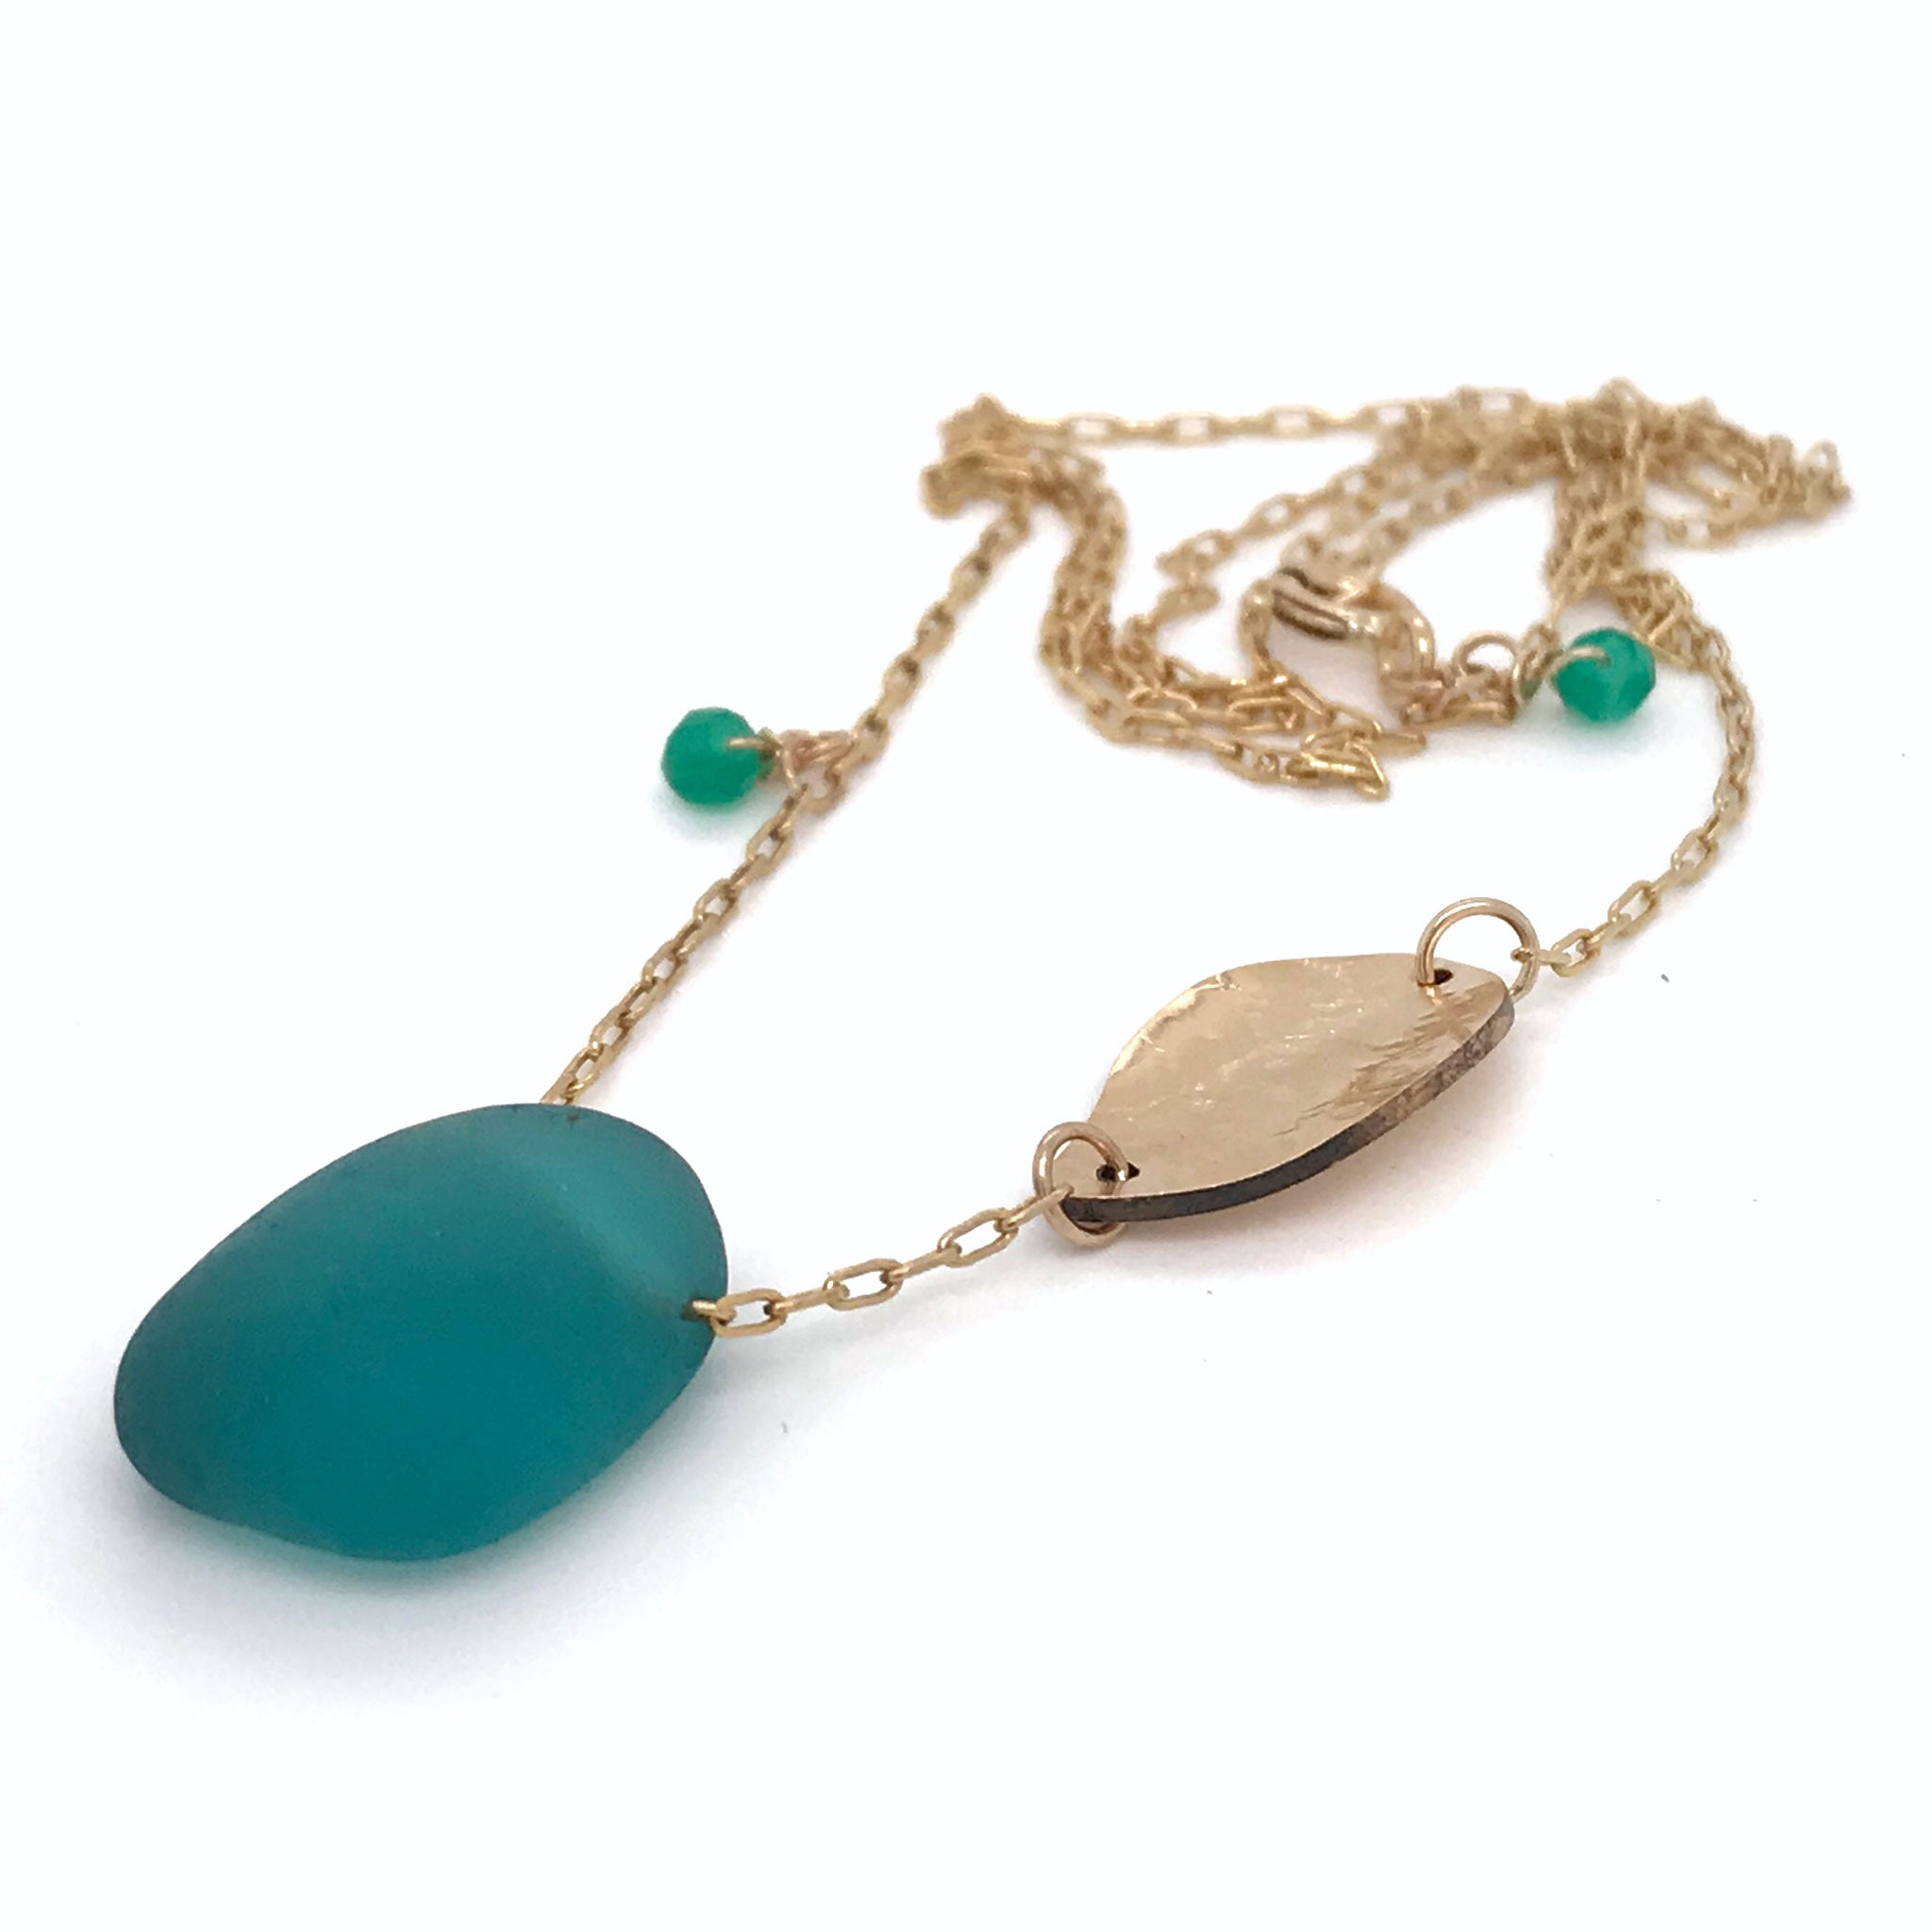 Teal Seaglass Necklace with Gold Leaf Charm – Gold